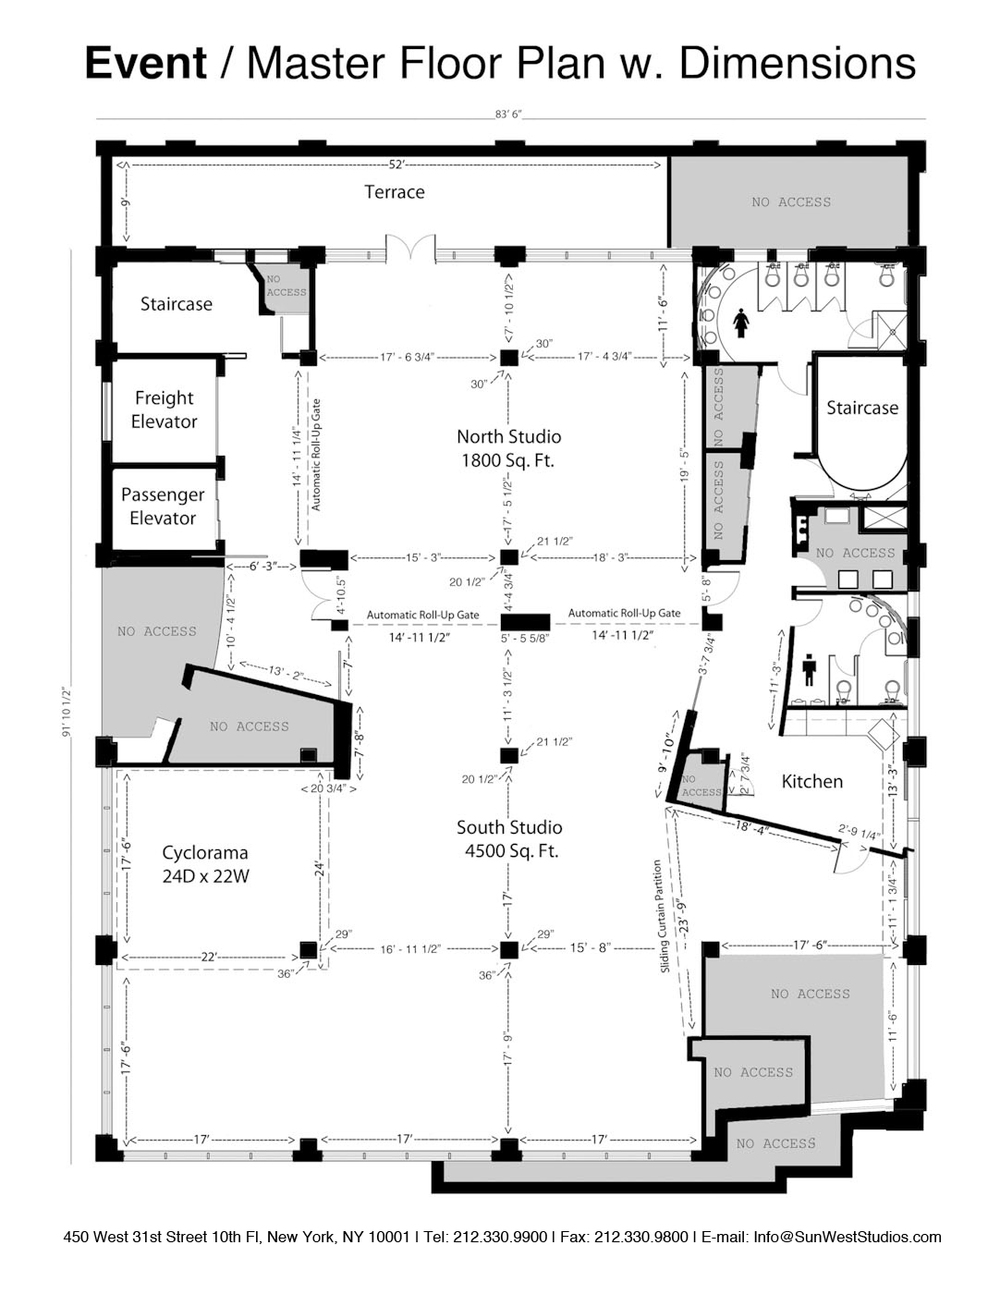 Event-Master-Floor-Plan-w-Dimensions-1400-w-Title-w-Footer1.jpg